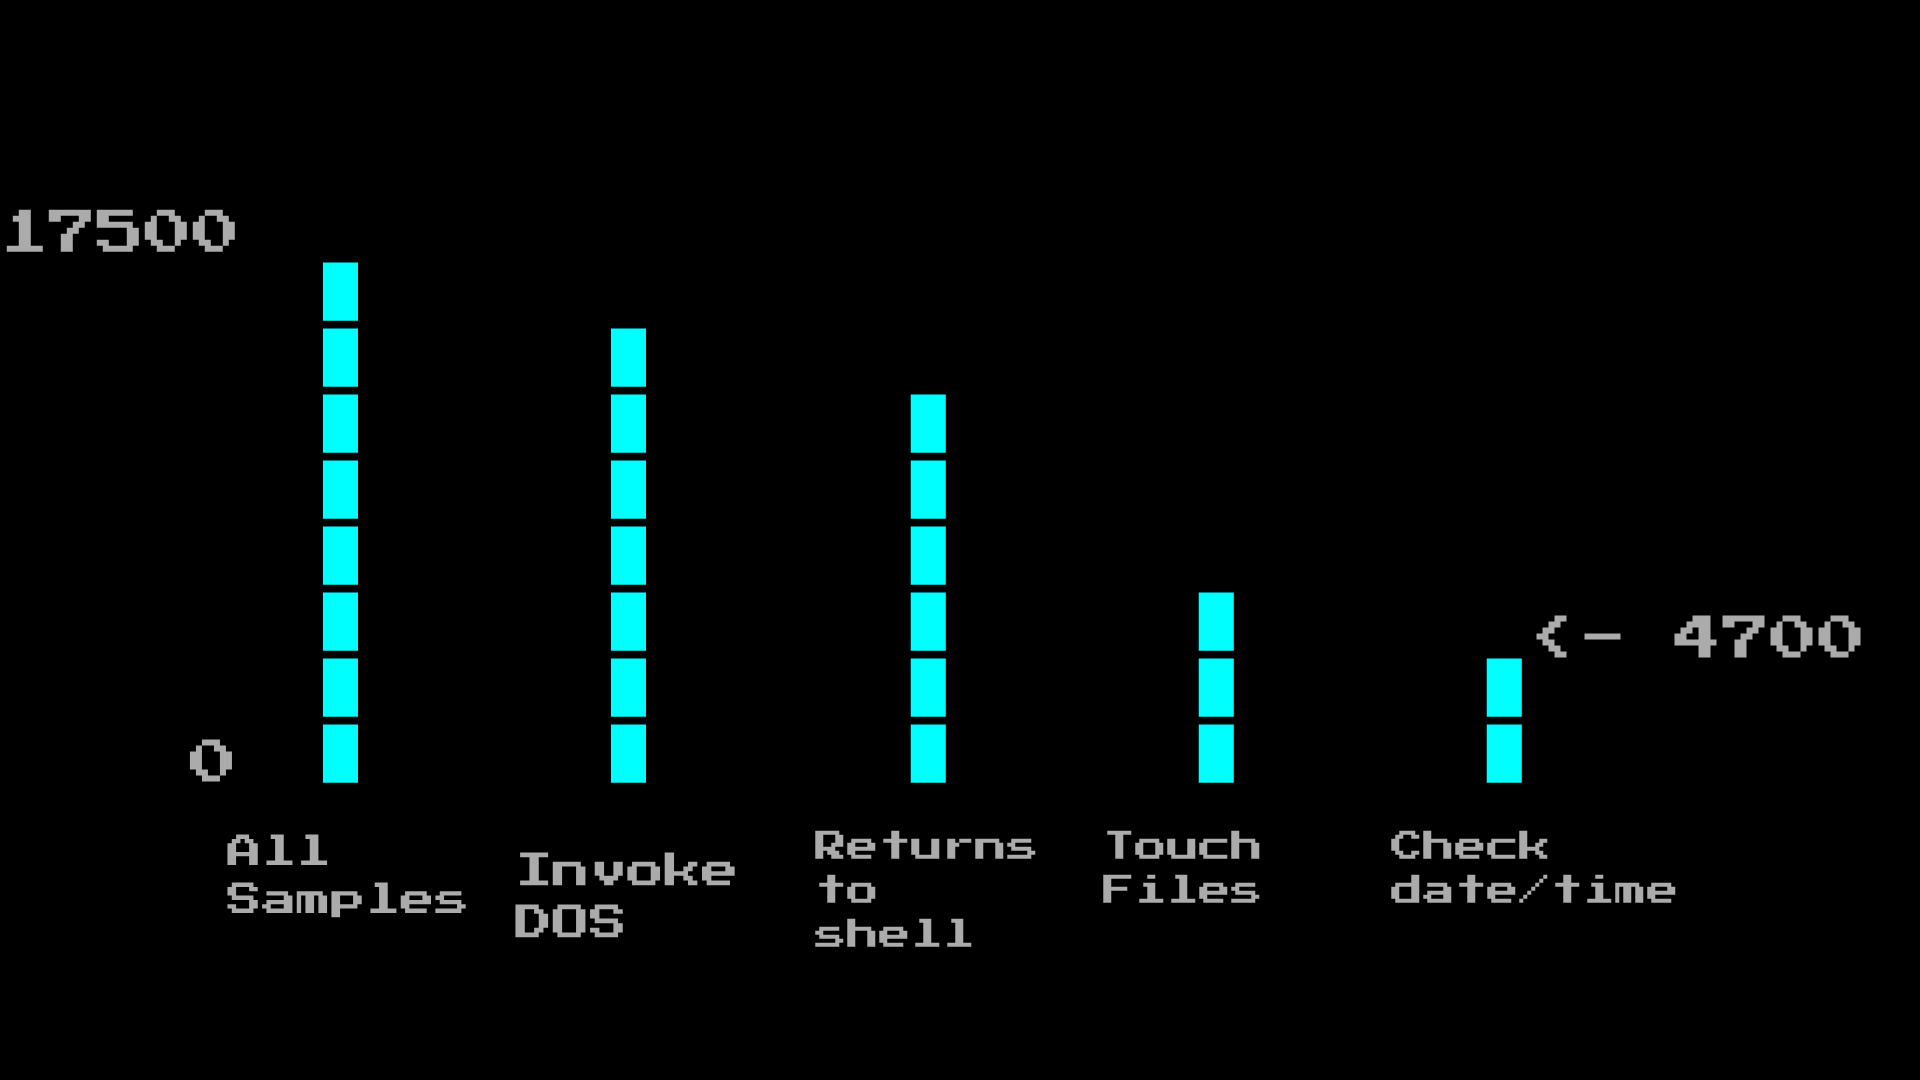 bar chart of malware types